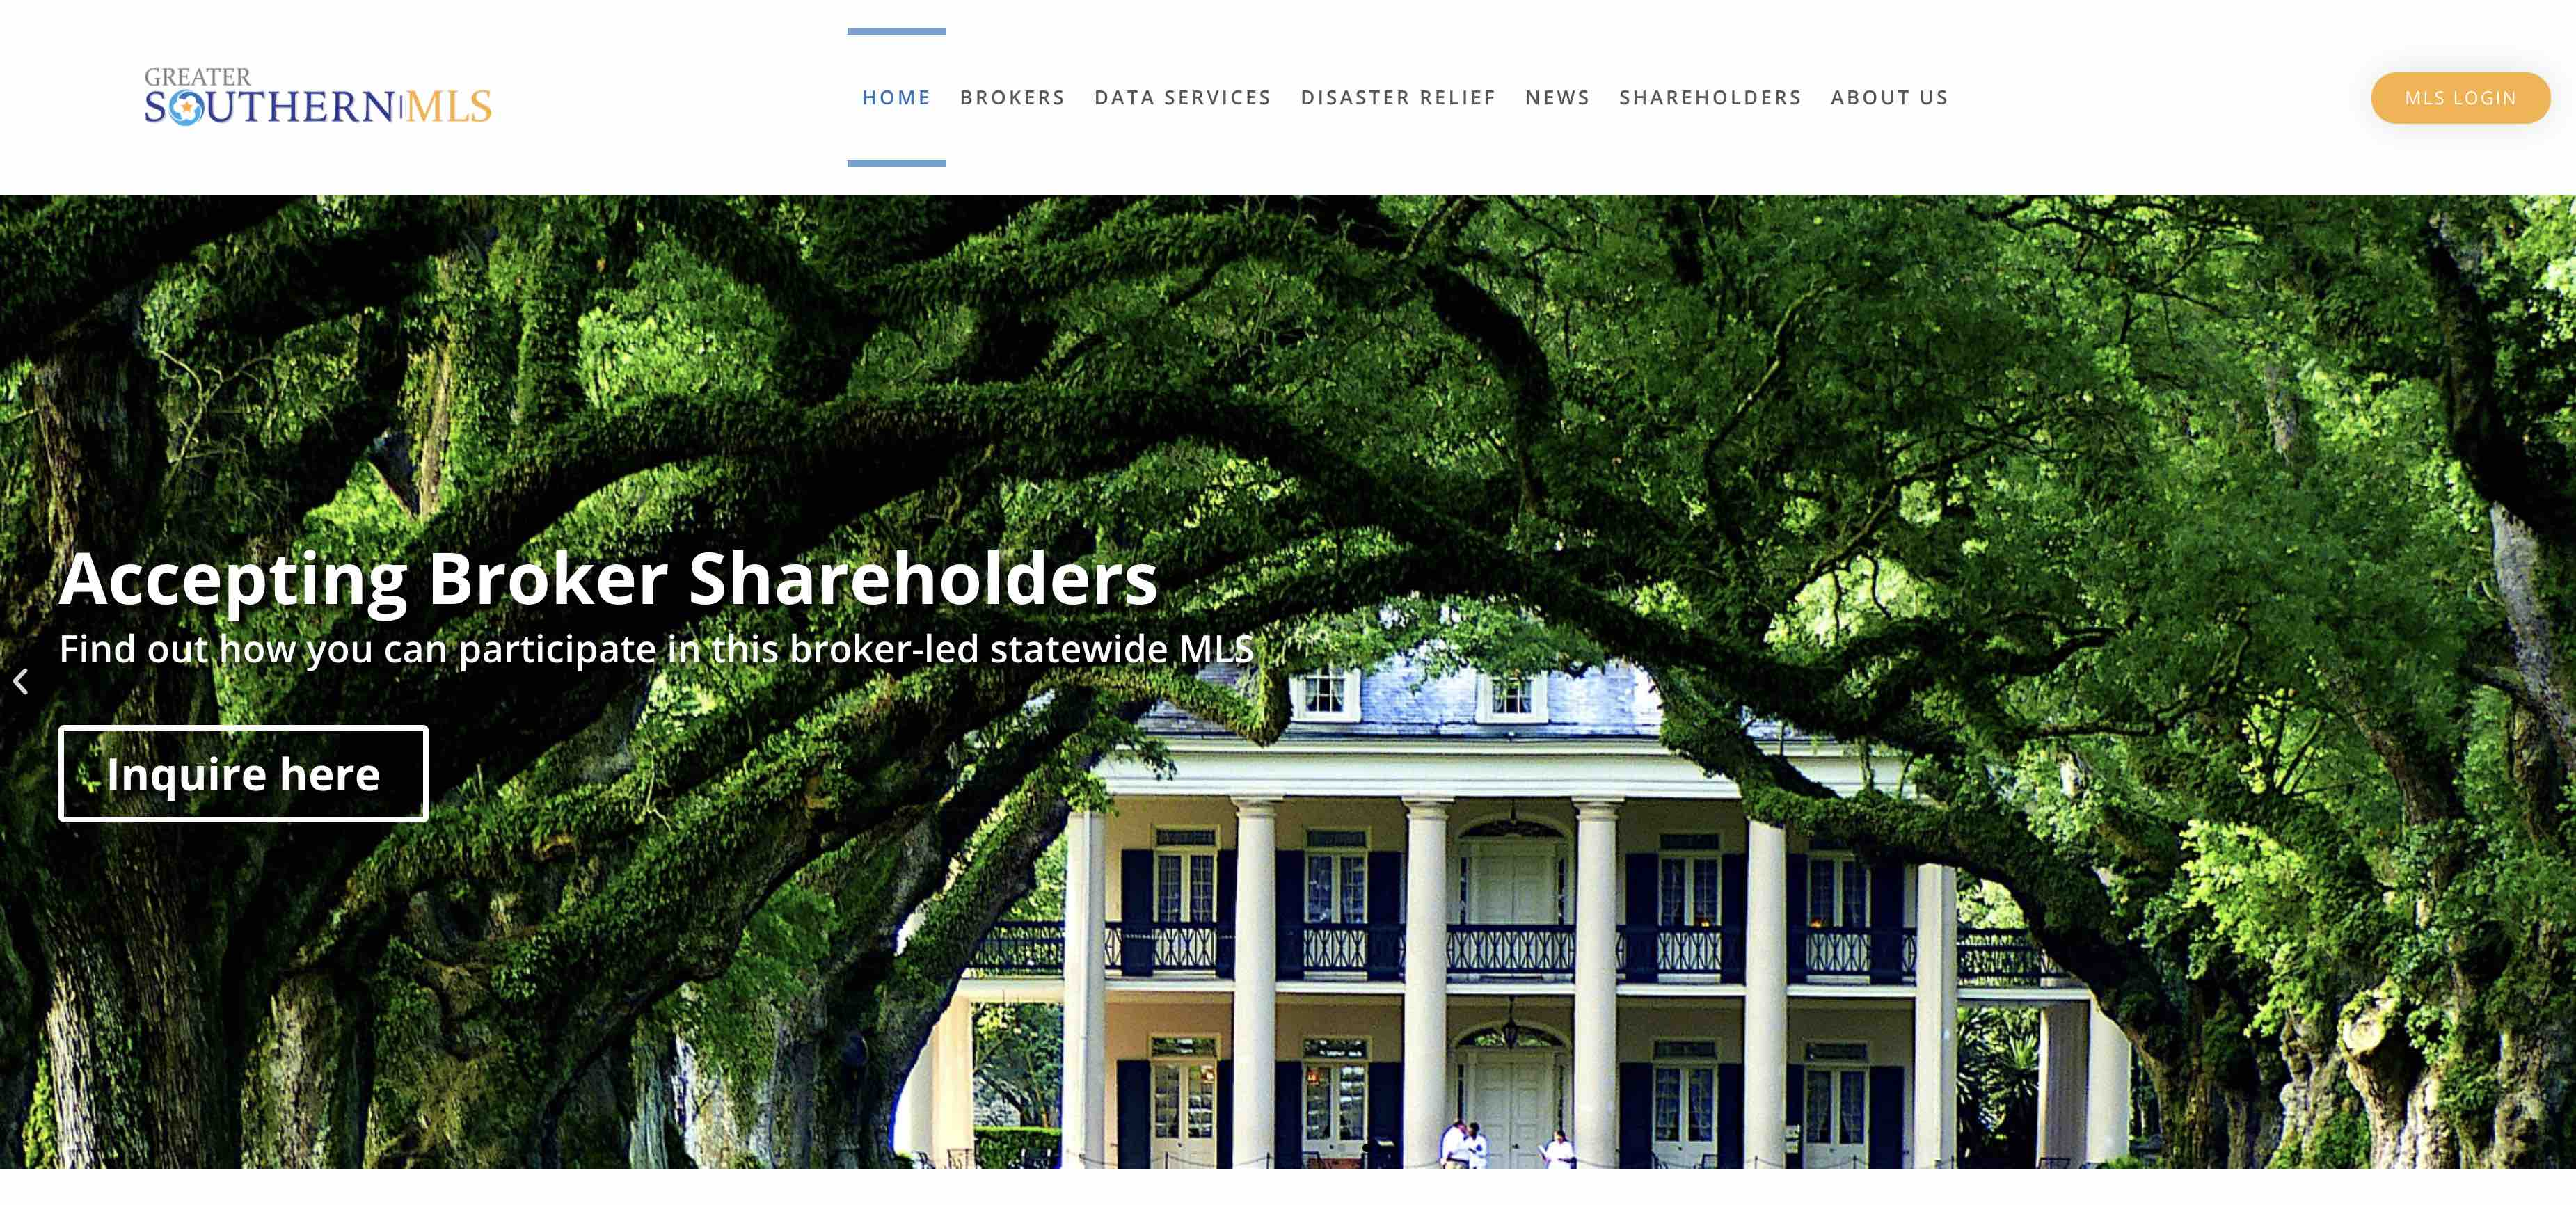 Greater Southern MLS and Broker Public Portal